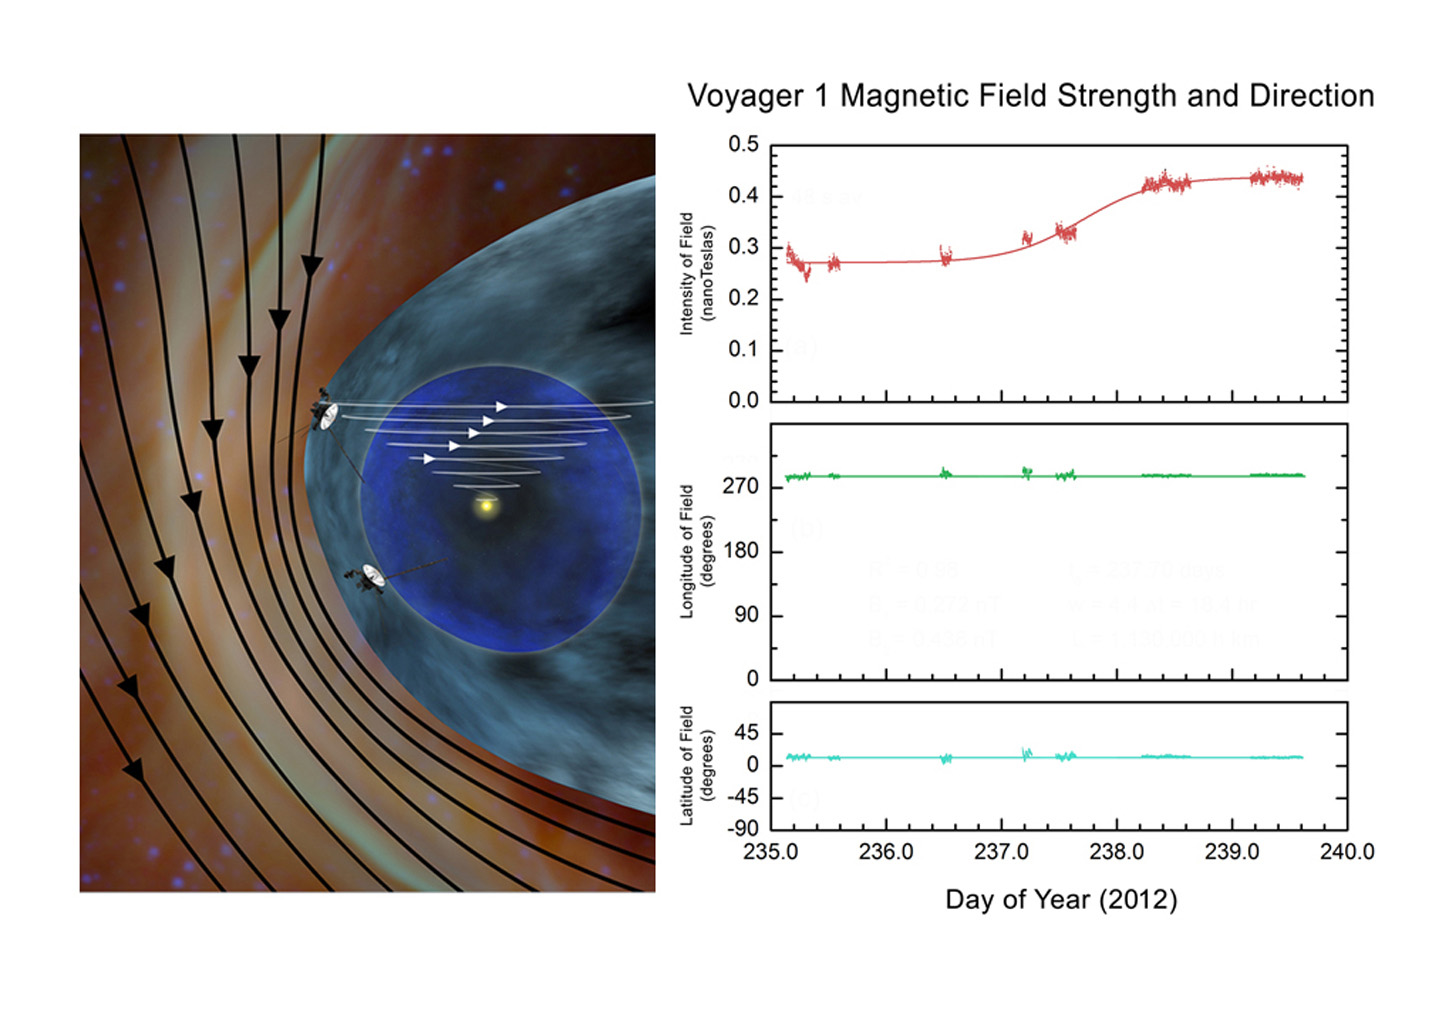 The artist's concept on left is based on theoretical models predicting the direction and strength of magnetic field lines coming from the sun and interstellar space.